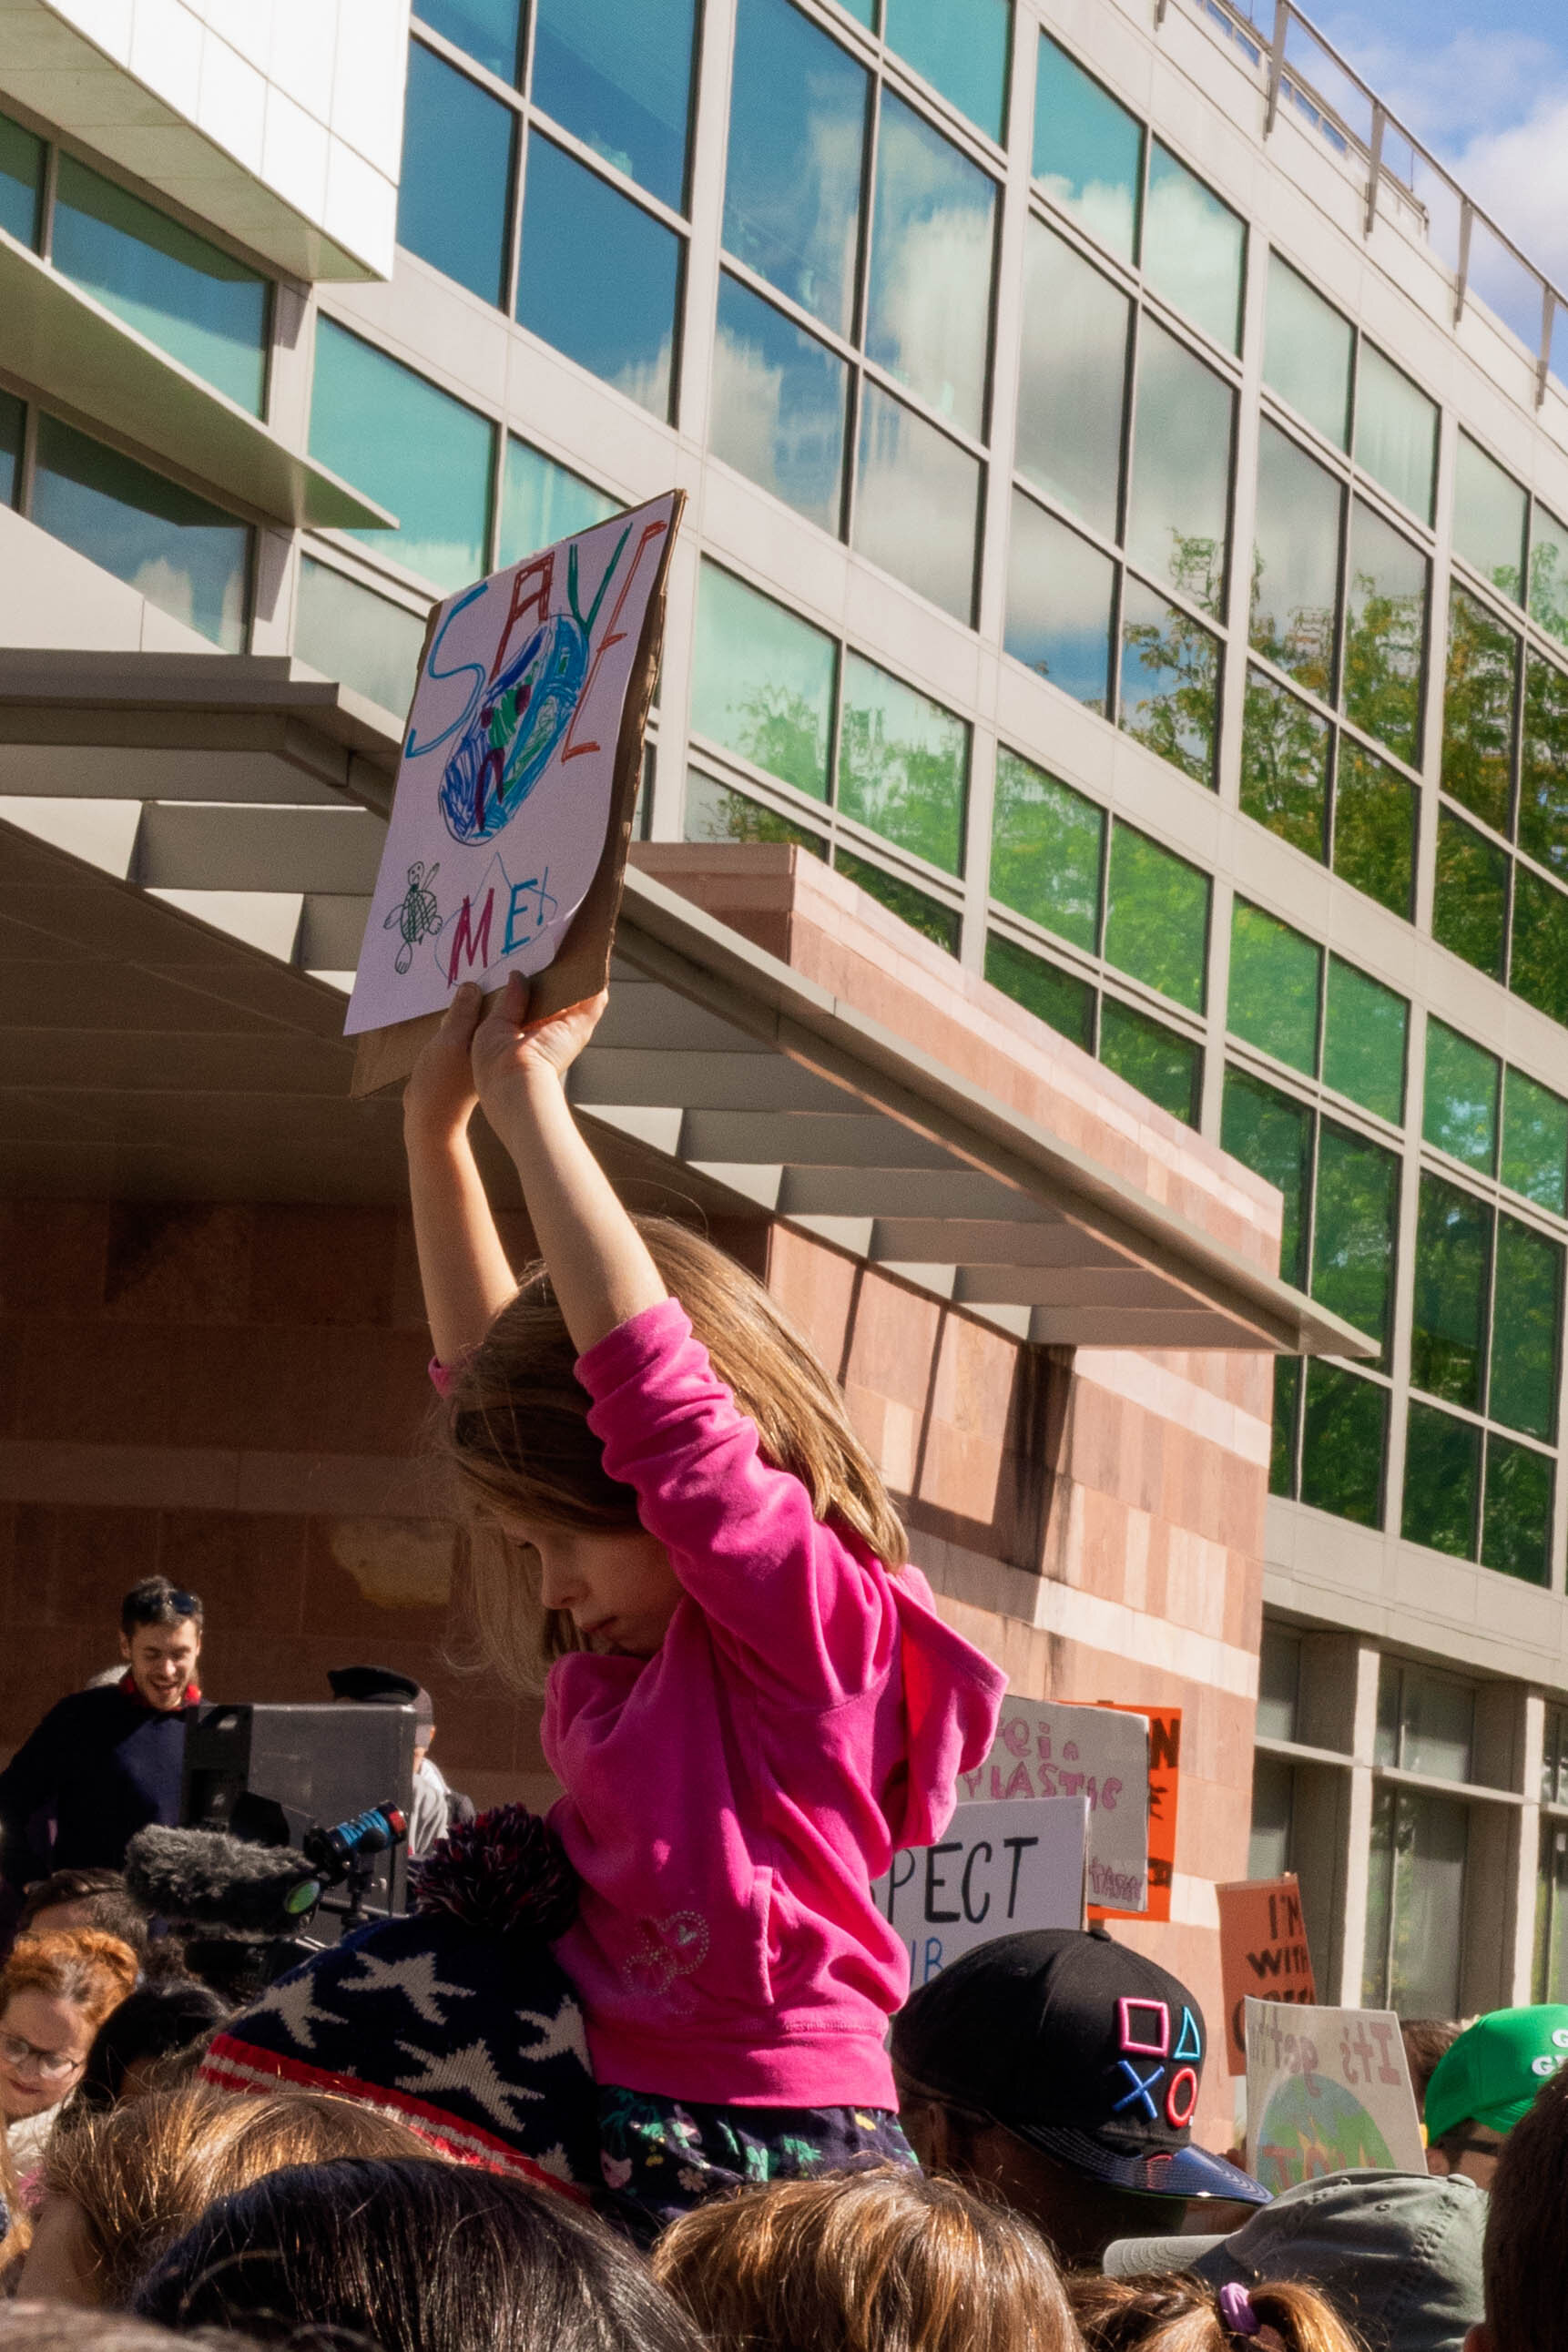 A child holds a hand-drawn sign, demanding the world be saved. Photo by Hayley Anderson